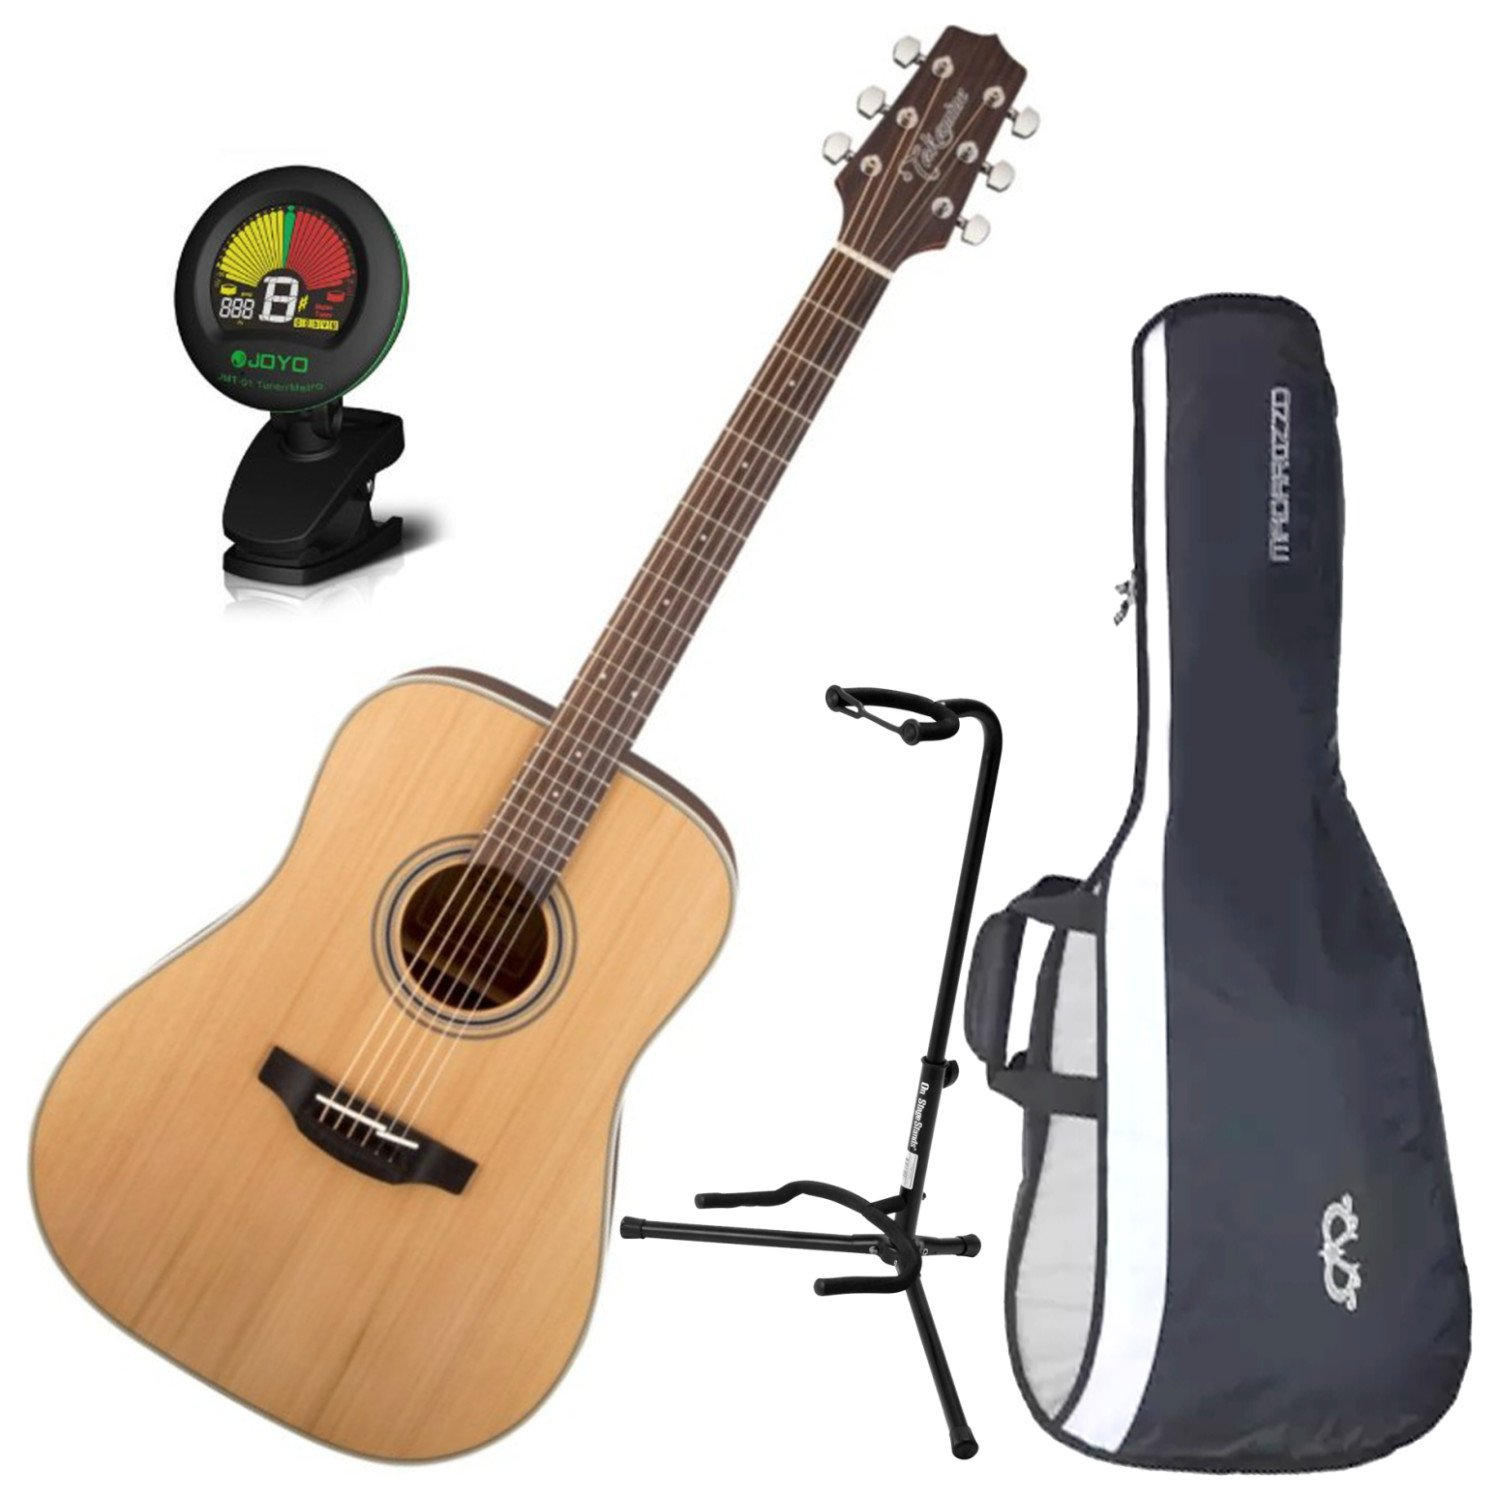 Takamine GD20-NS Satin Natural Acoustic Guitar Dreadnought Cedar Top w/ Gig Bag, Stand, and Tuner by Takamine